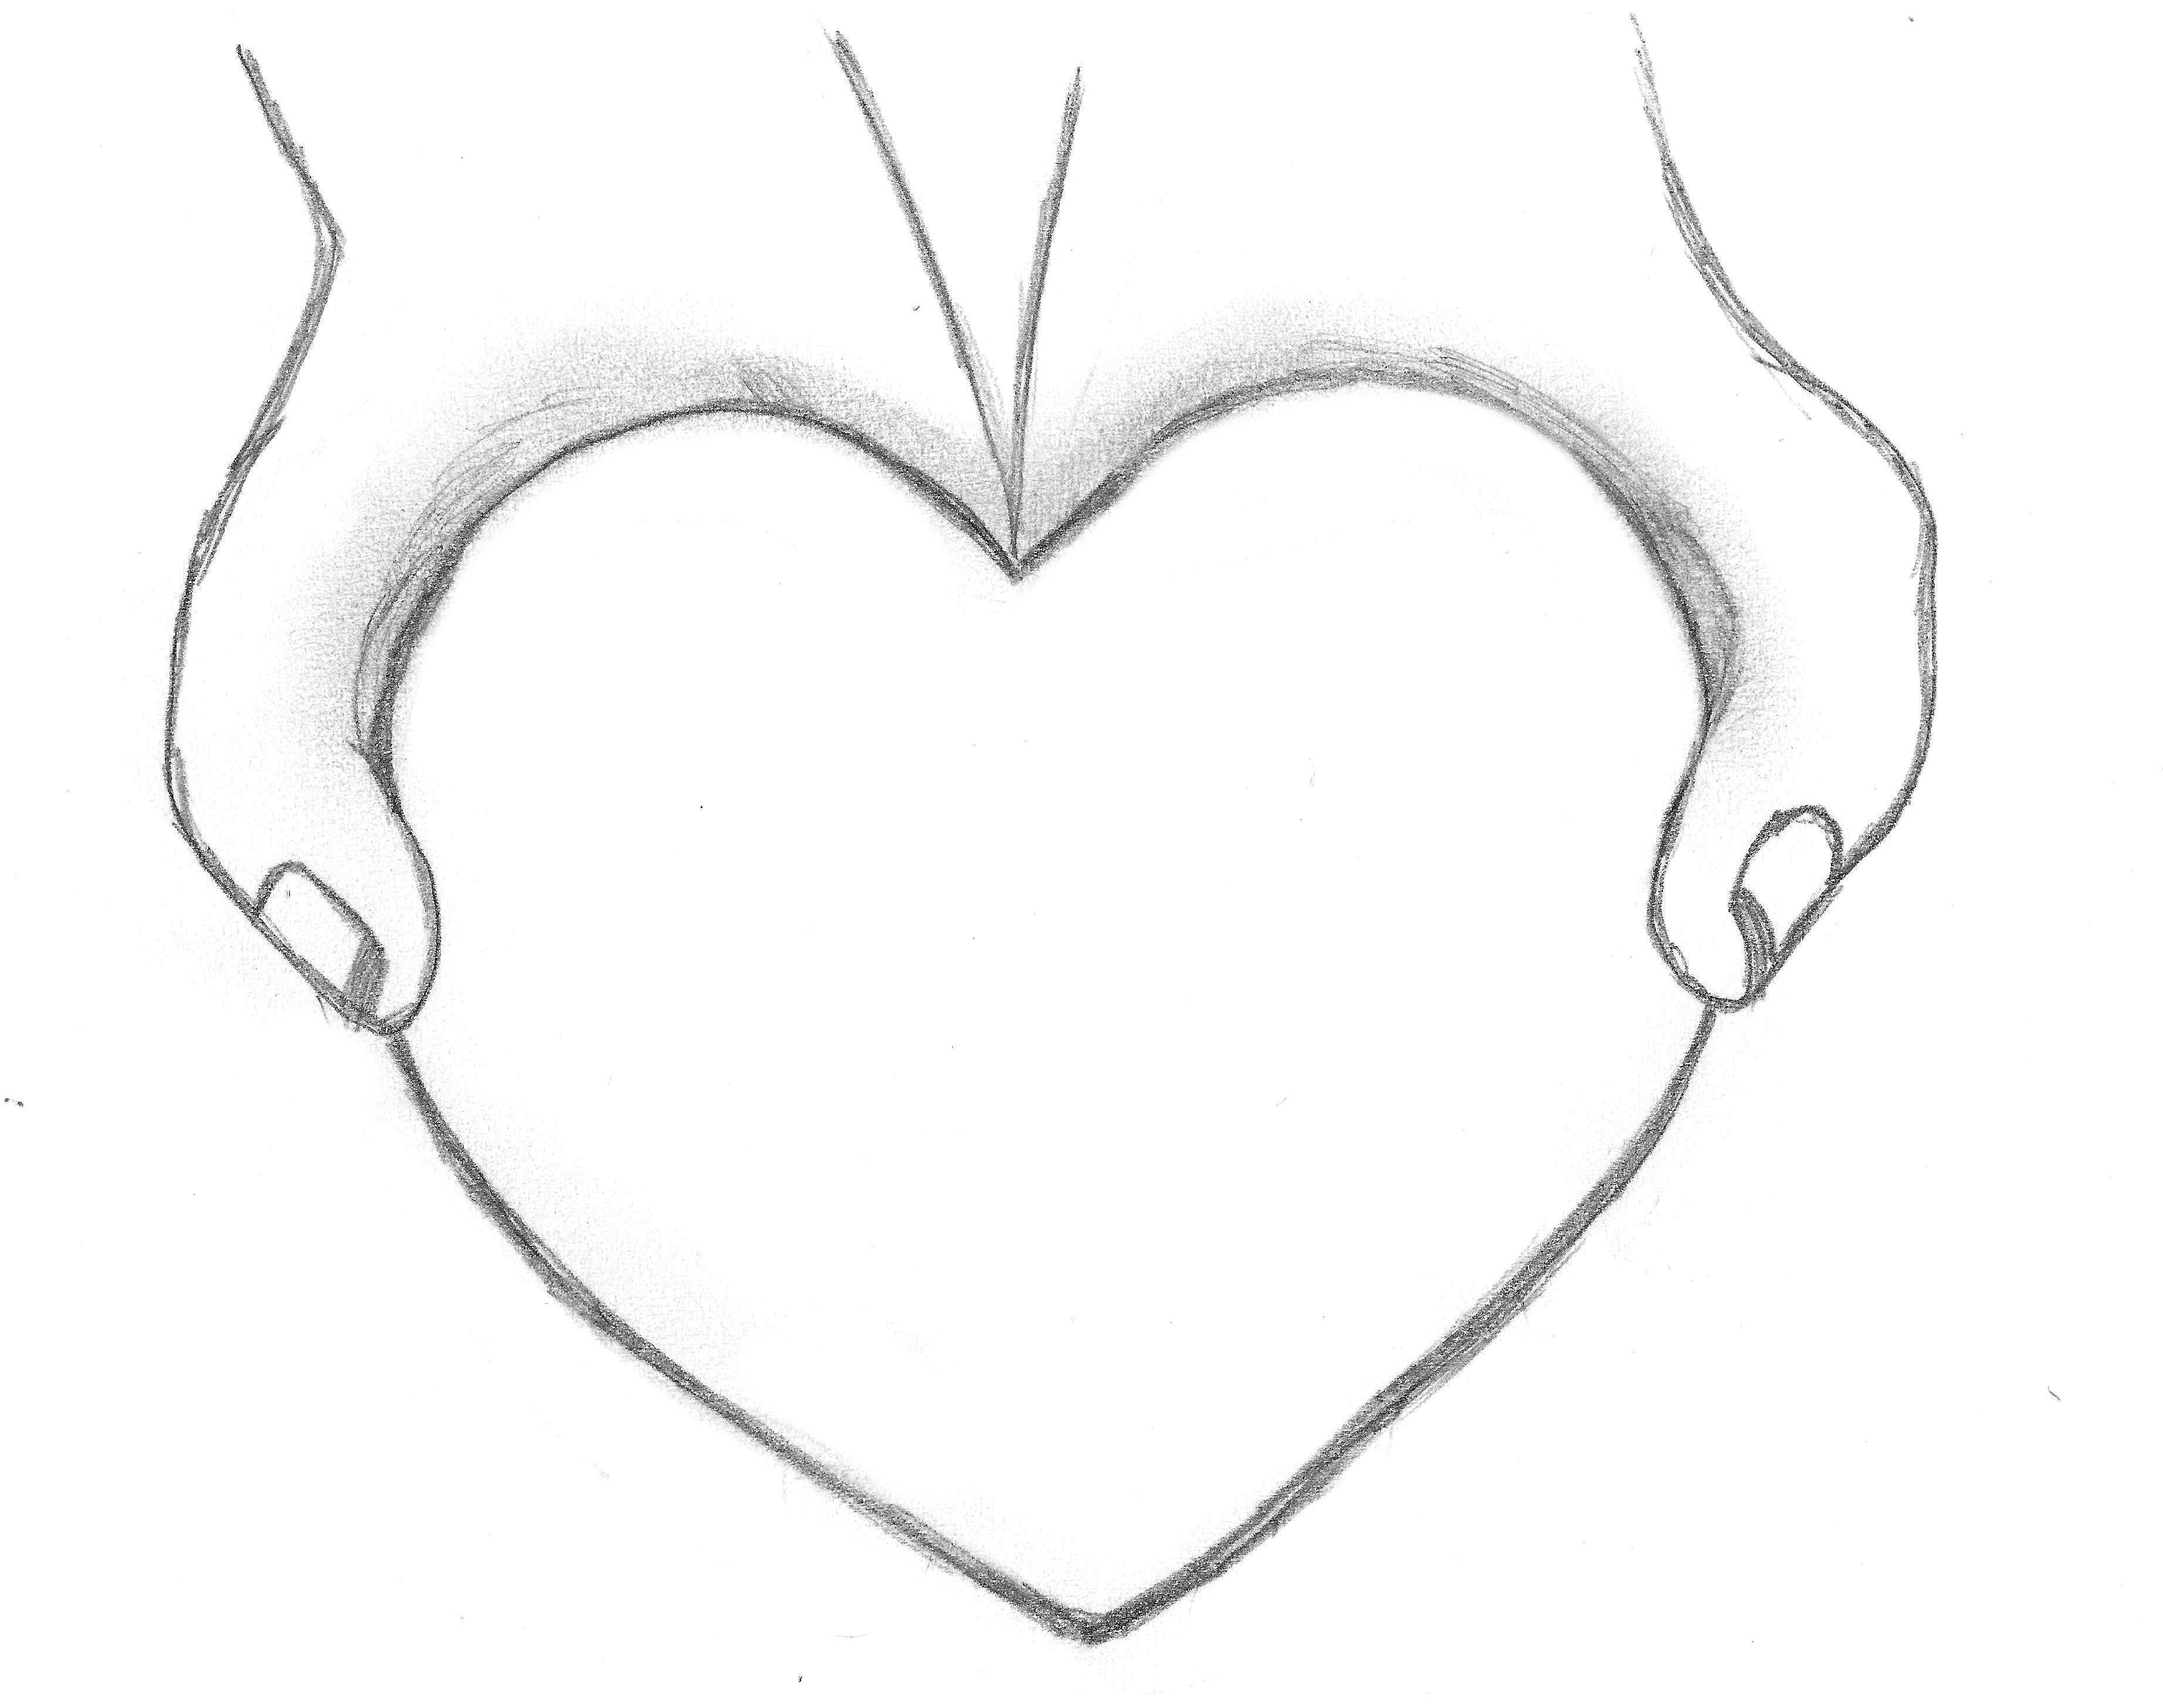 3688x2912 Heart Drawings For Your Boyfriend I Miss You Drawing A Heart